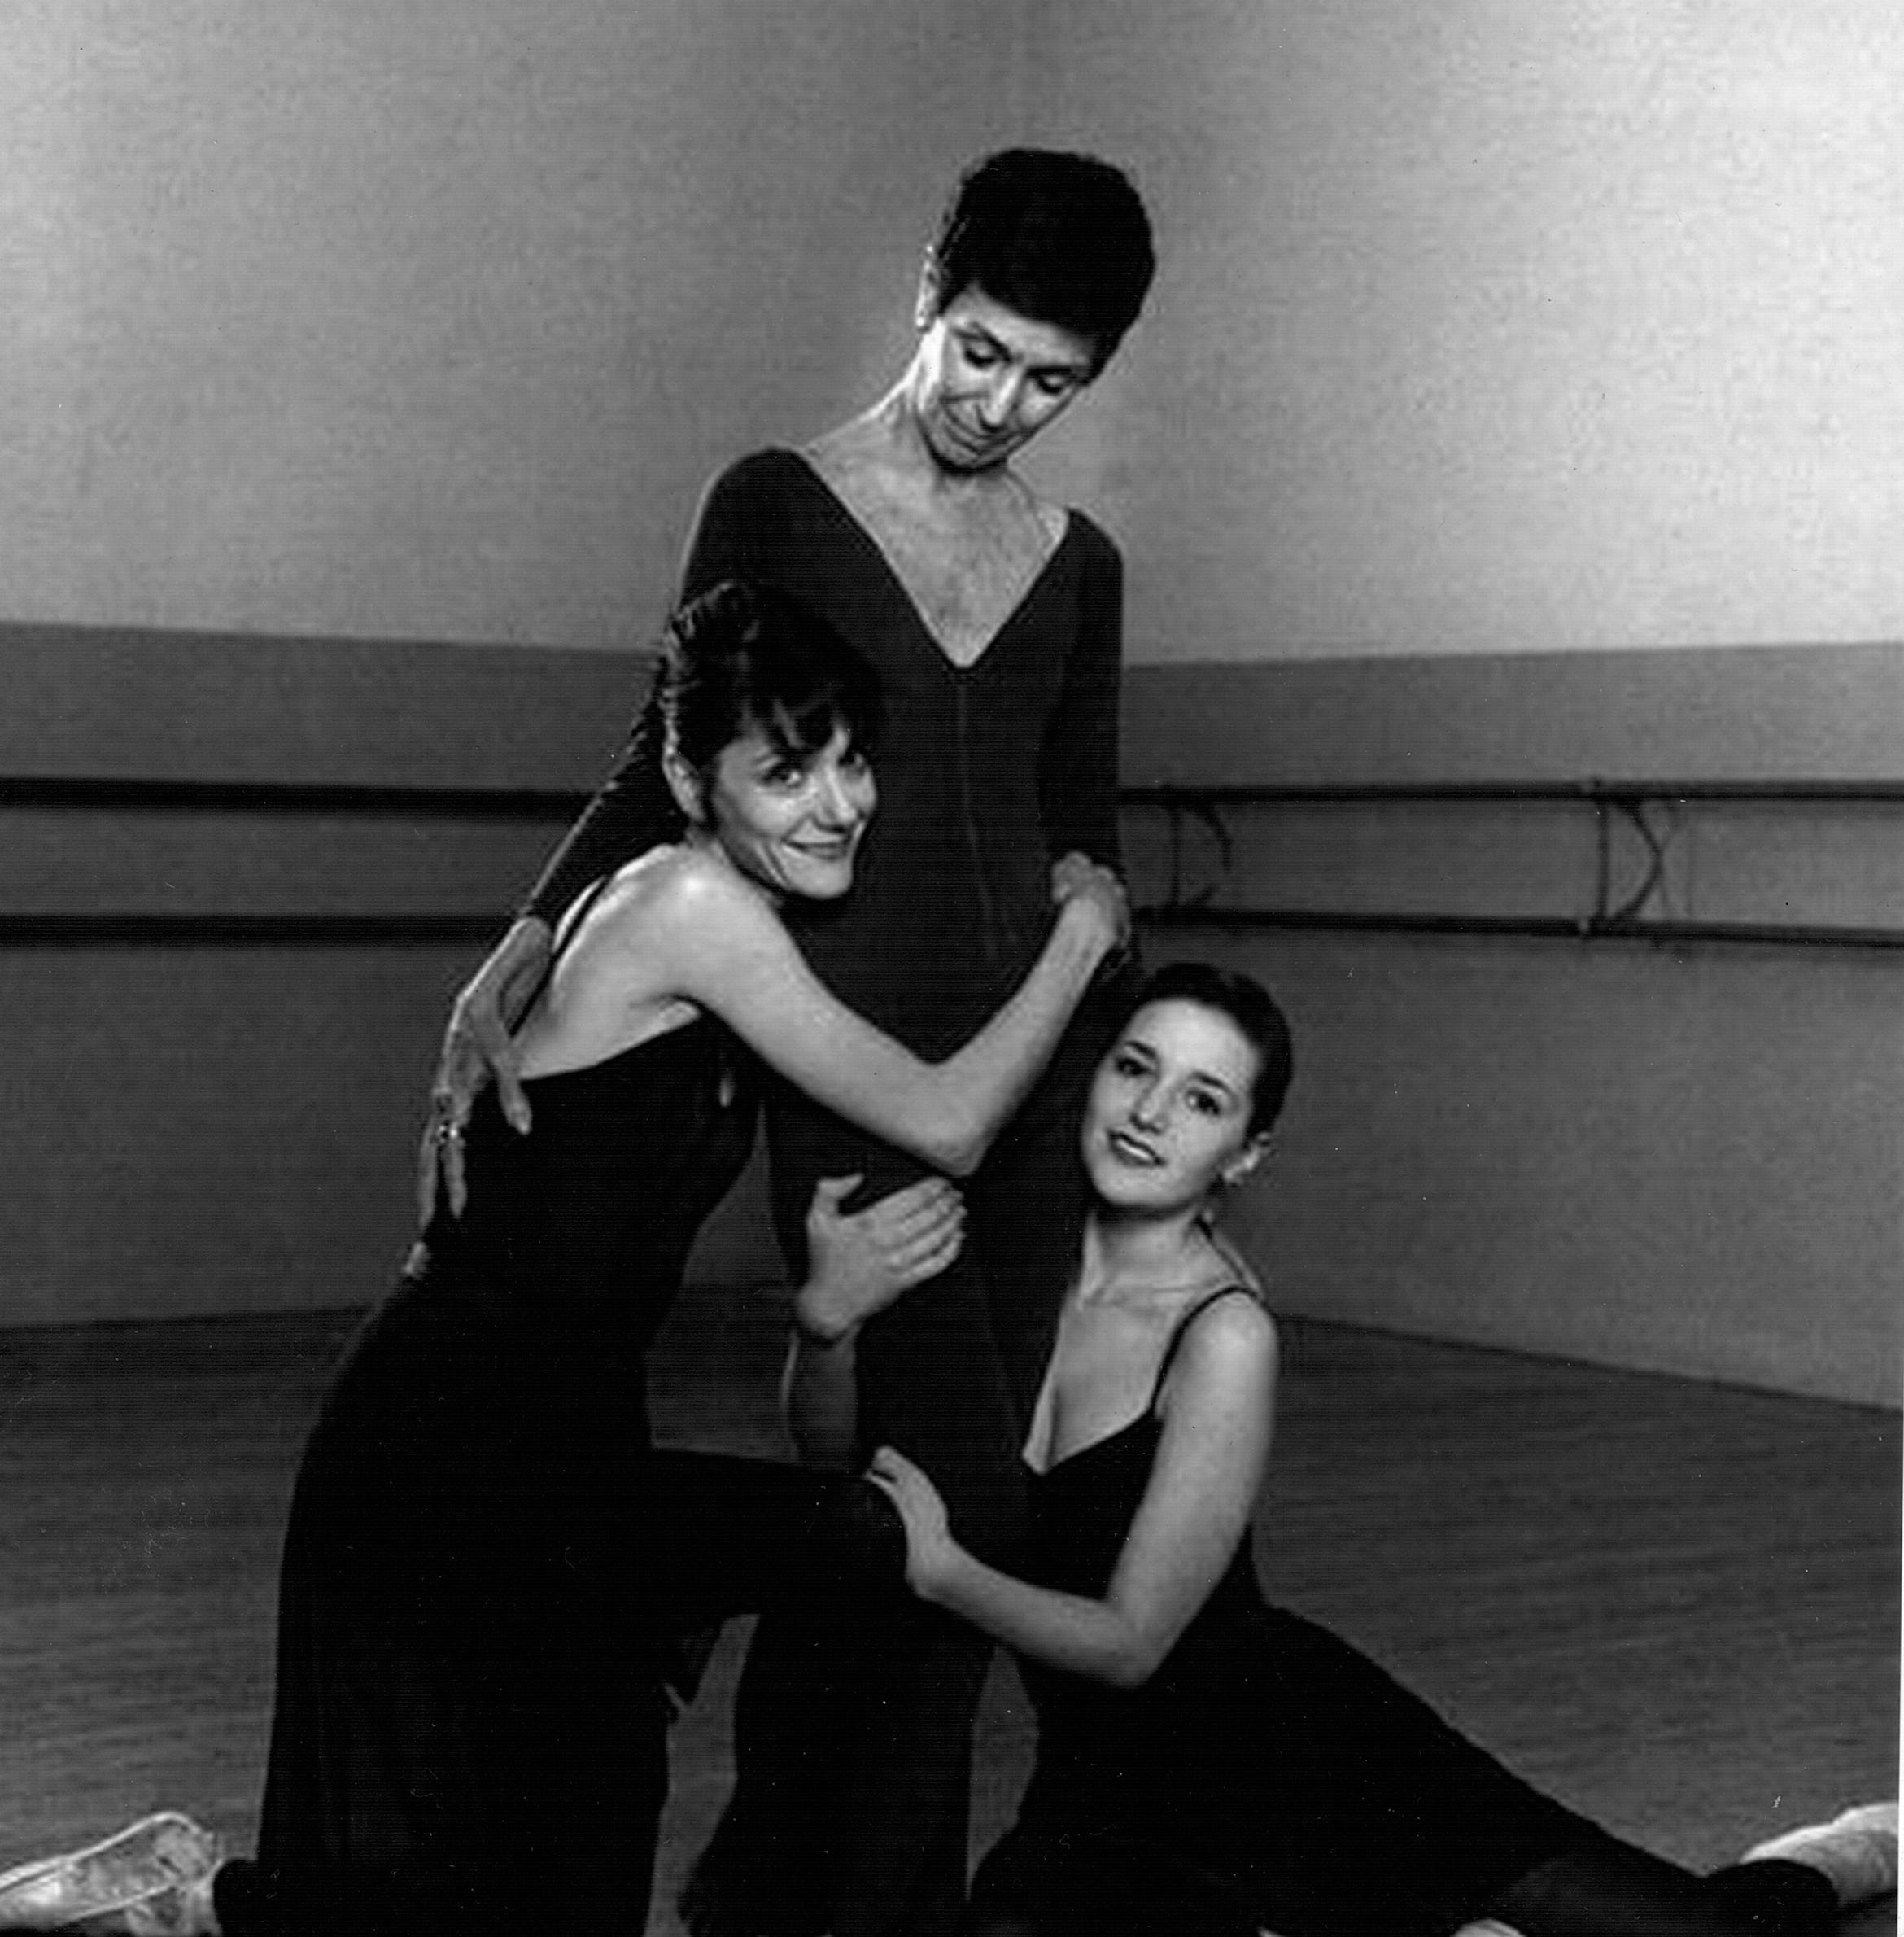 Mothers, daughters and a legacy of ballet